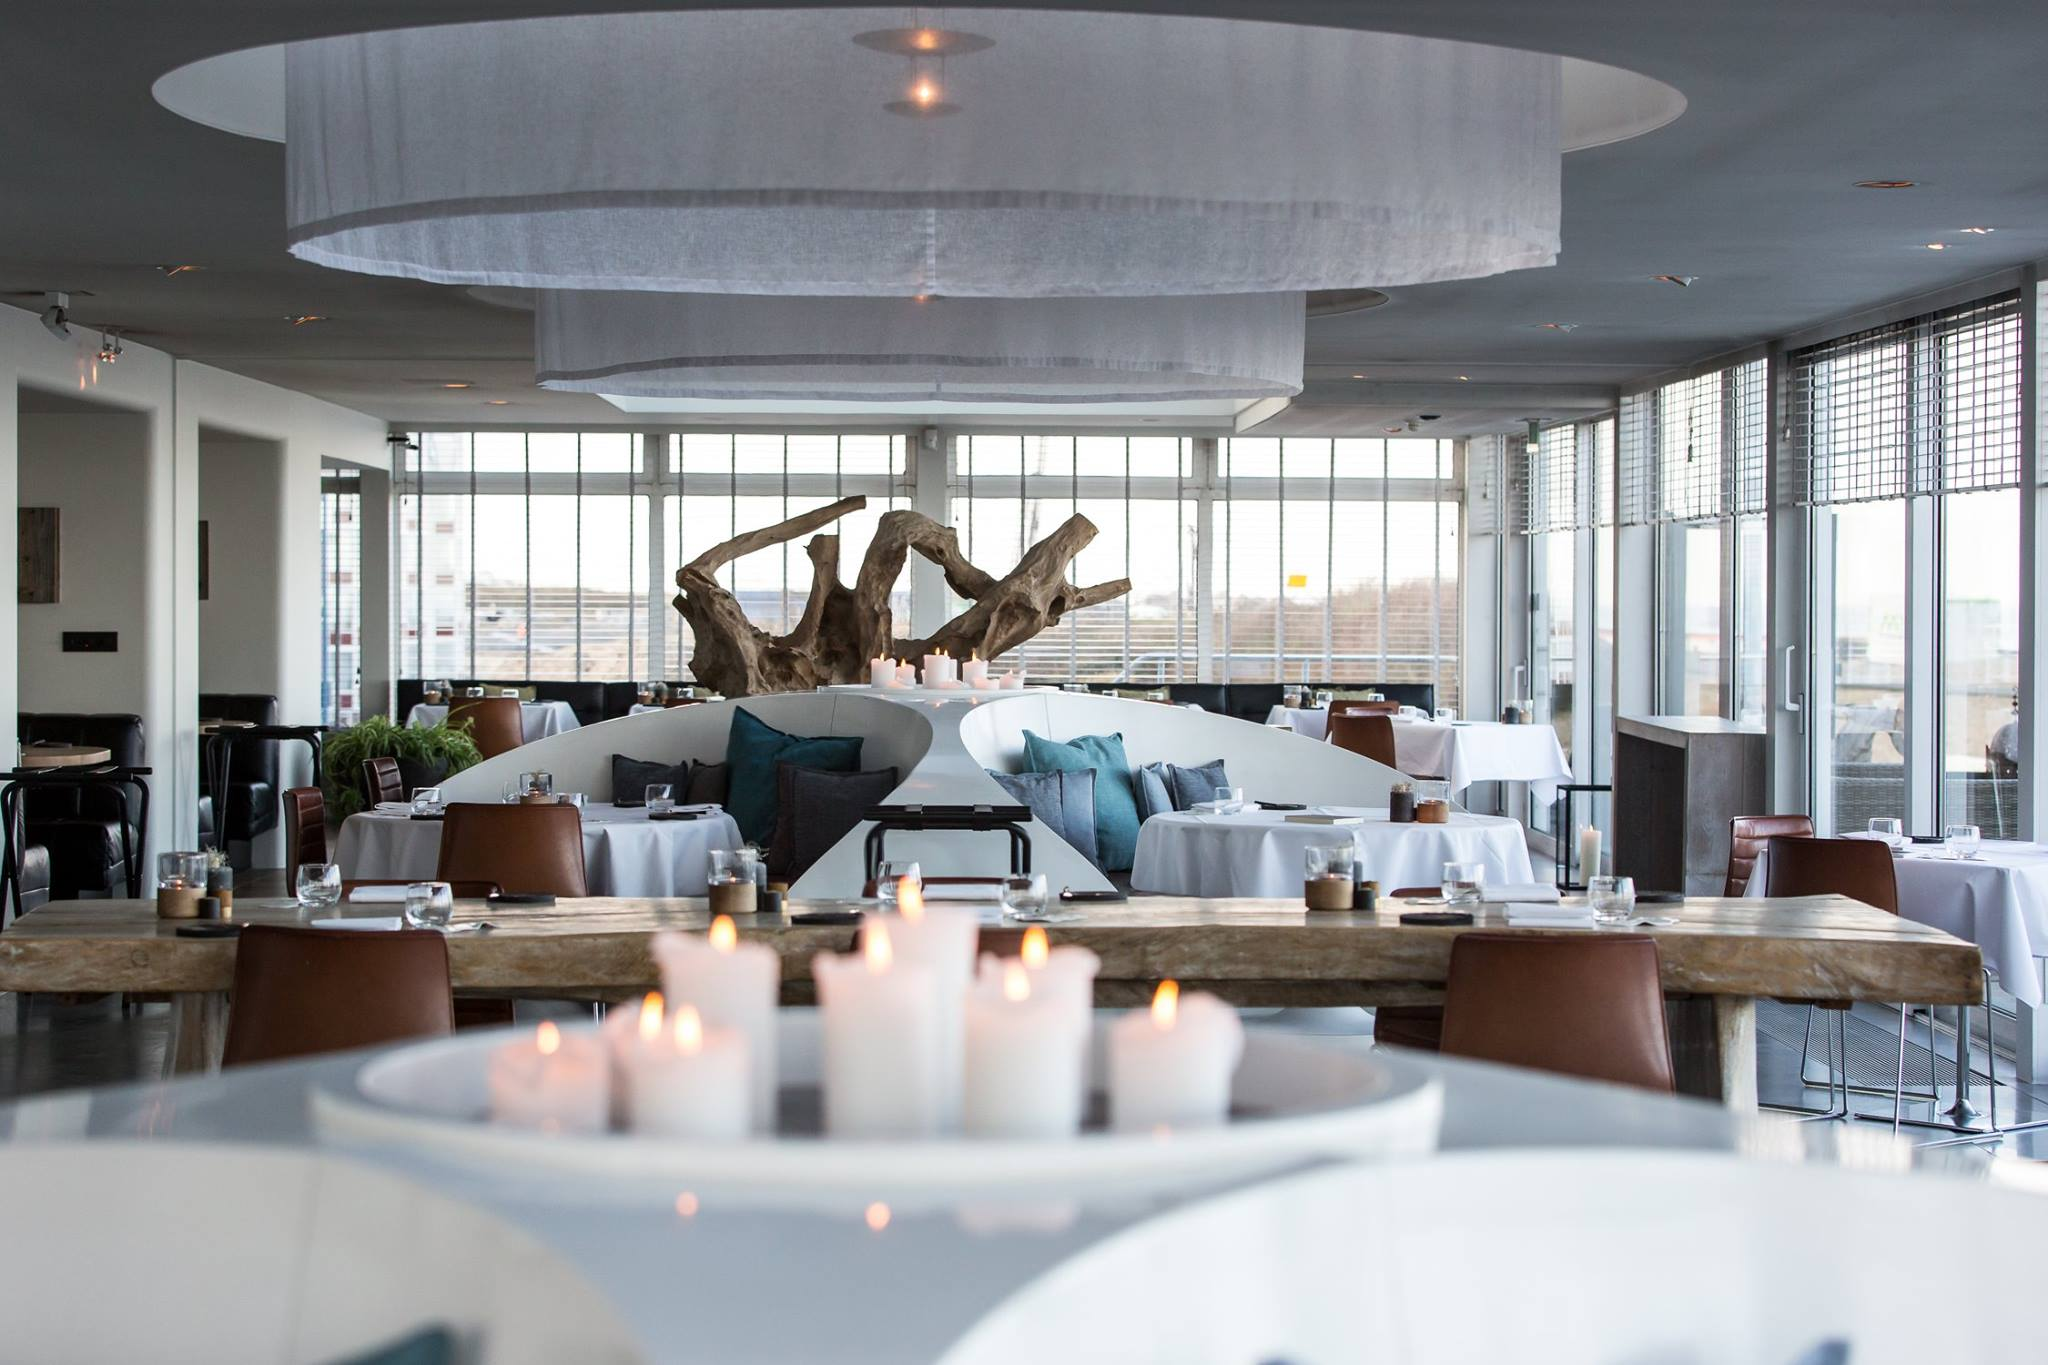 Bistro Esszimmer Am See Pure C In Cadzand The Netherlands 1 Michelin Star Review By